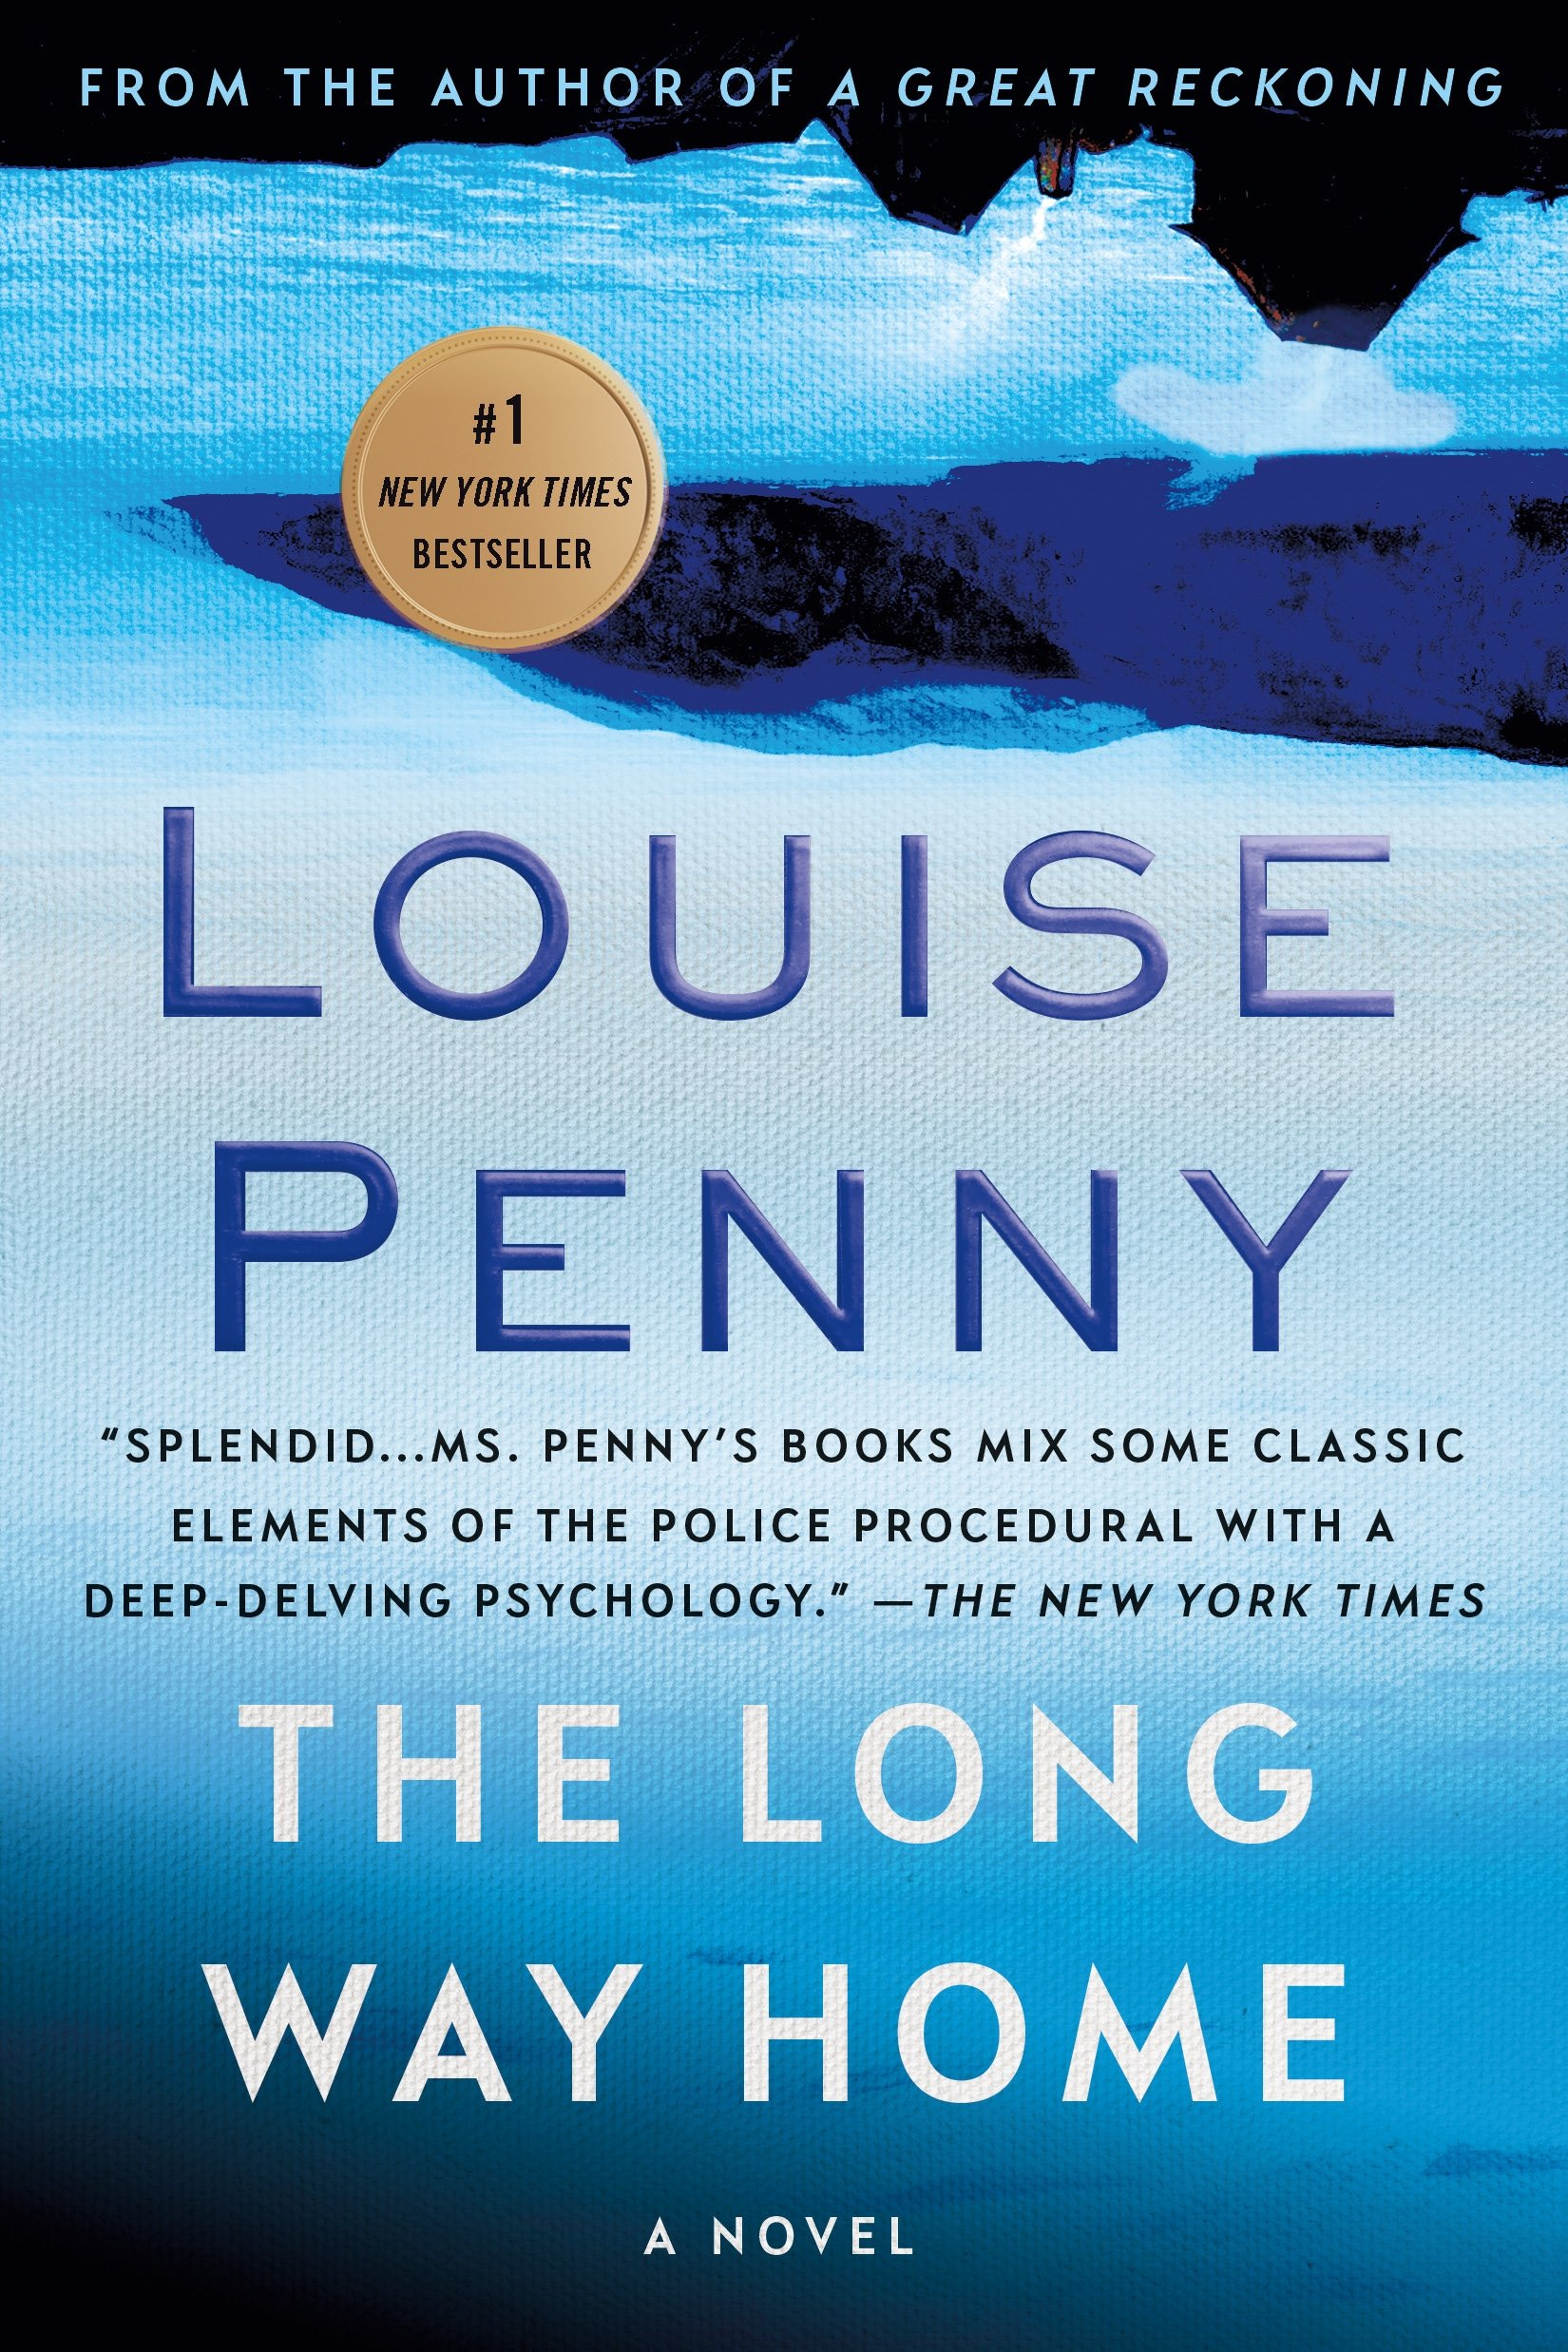 Louise Penny books